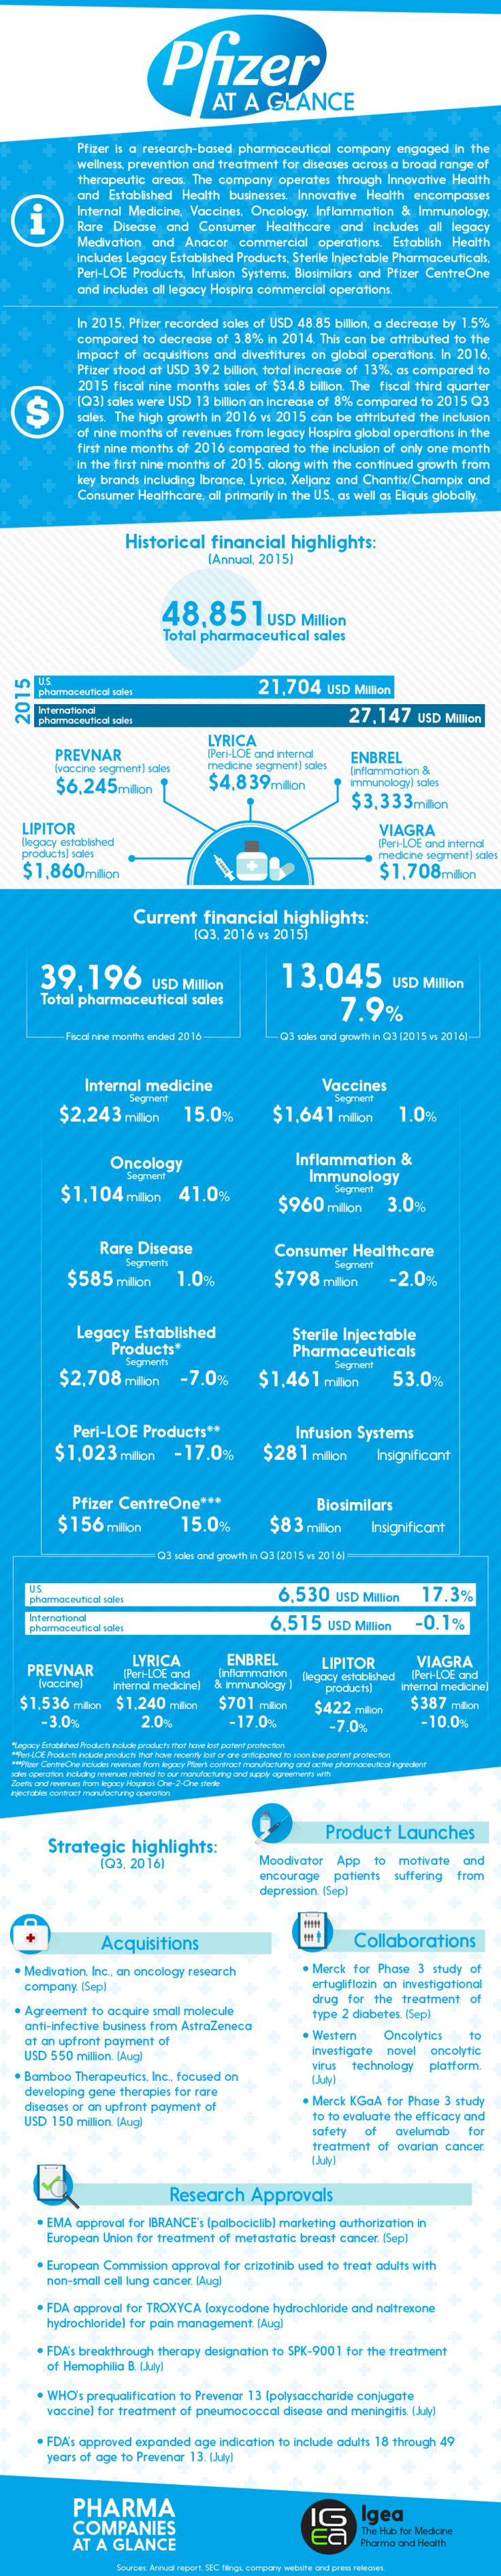 Best Pharma Companies at a Glance: Pfizer #pharma #health